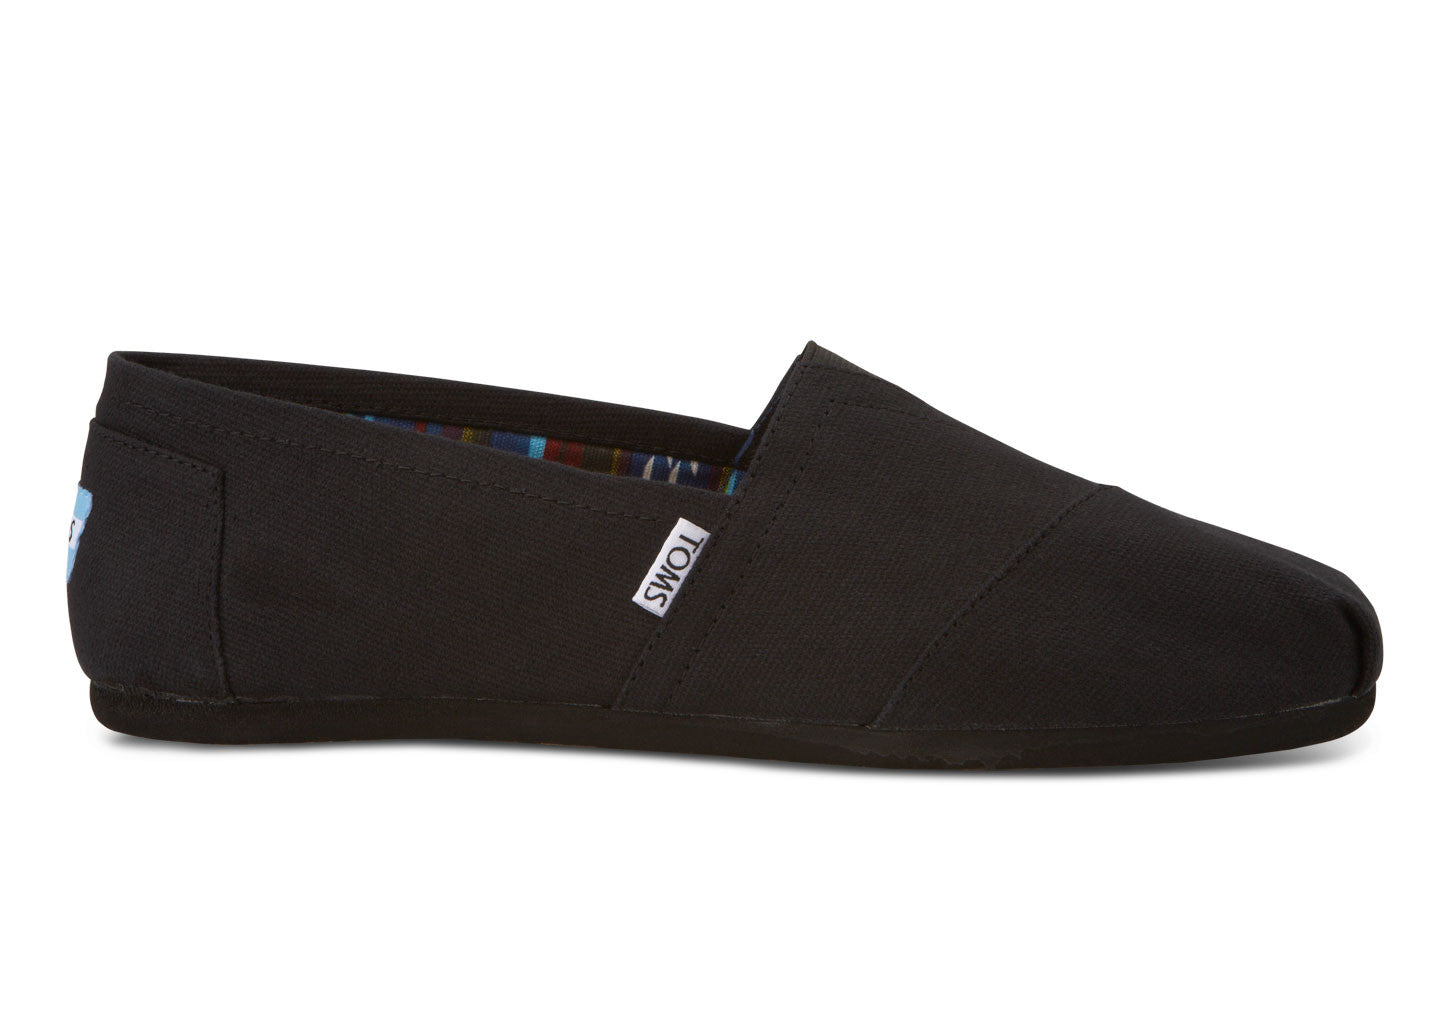 ALPARGATA CLASSIC BLK/BLK CANVAS SLIP ON